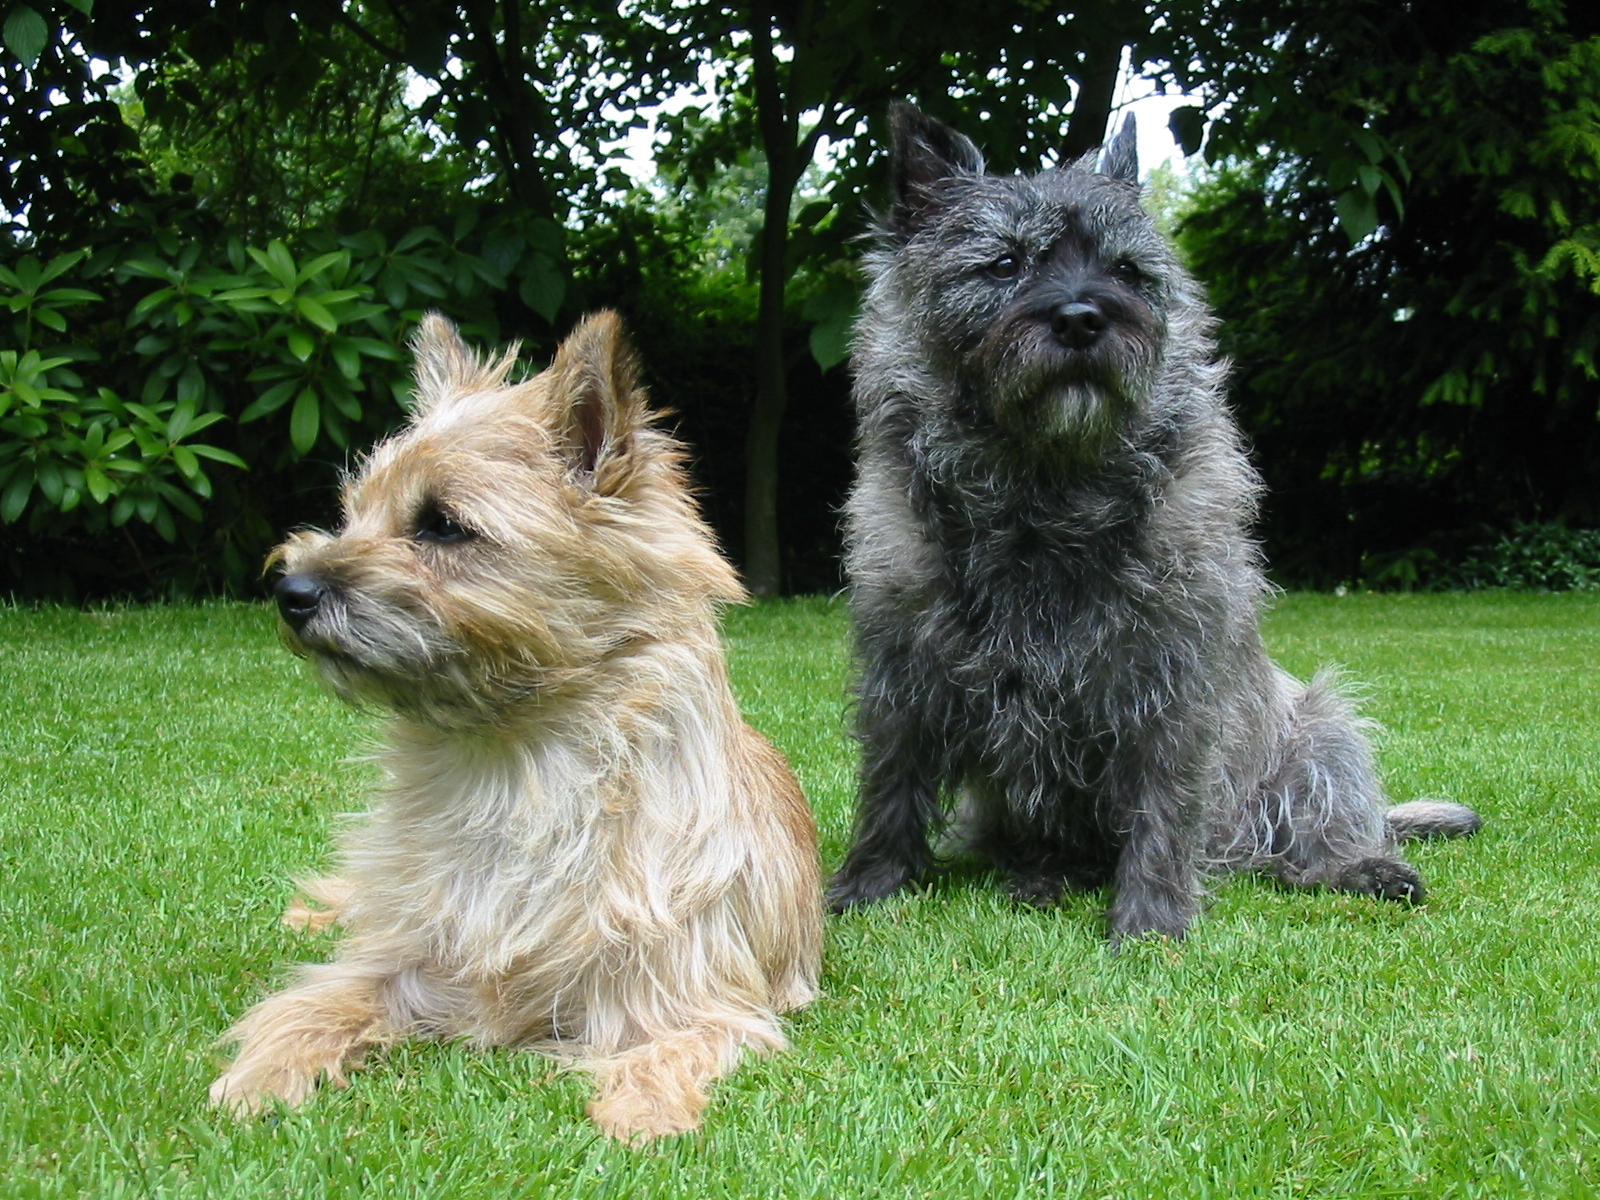 File:Cairn-Terrier-Garten1.jpg - Wikipedia, the free encyclopedia